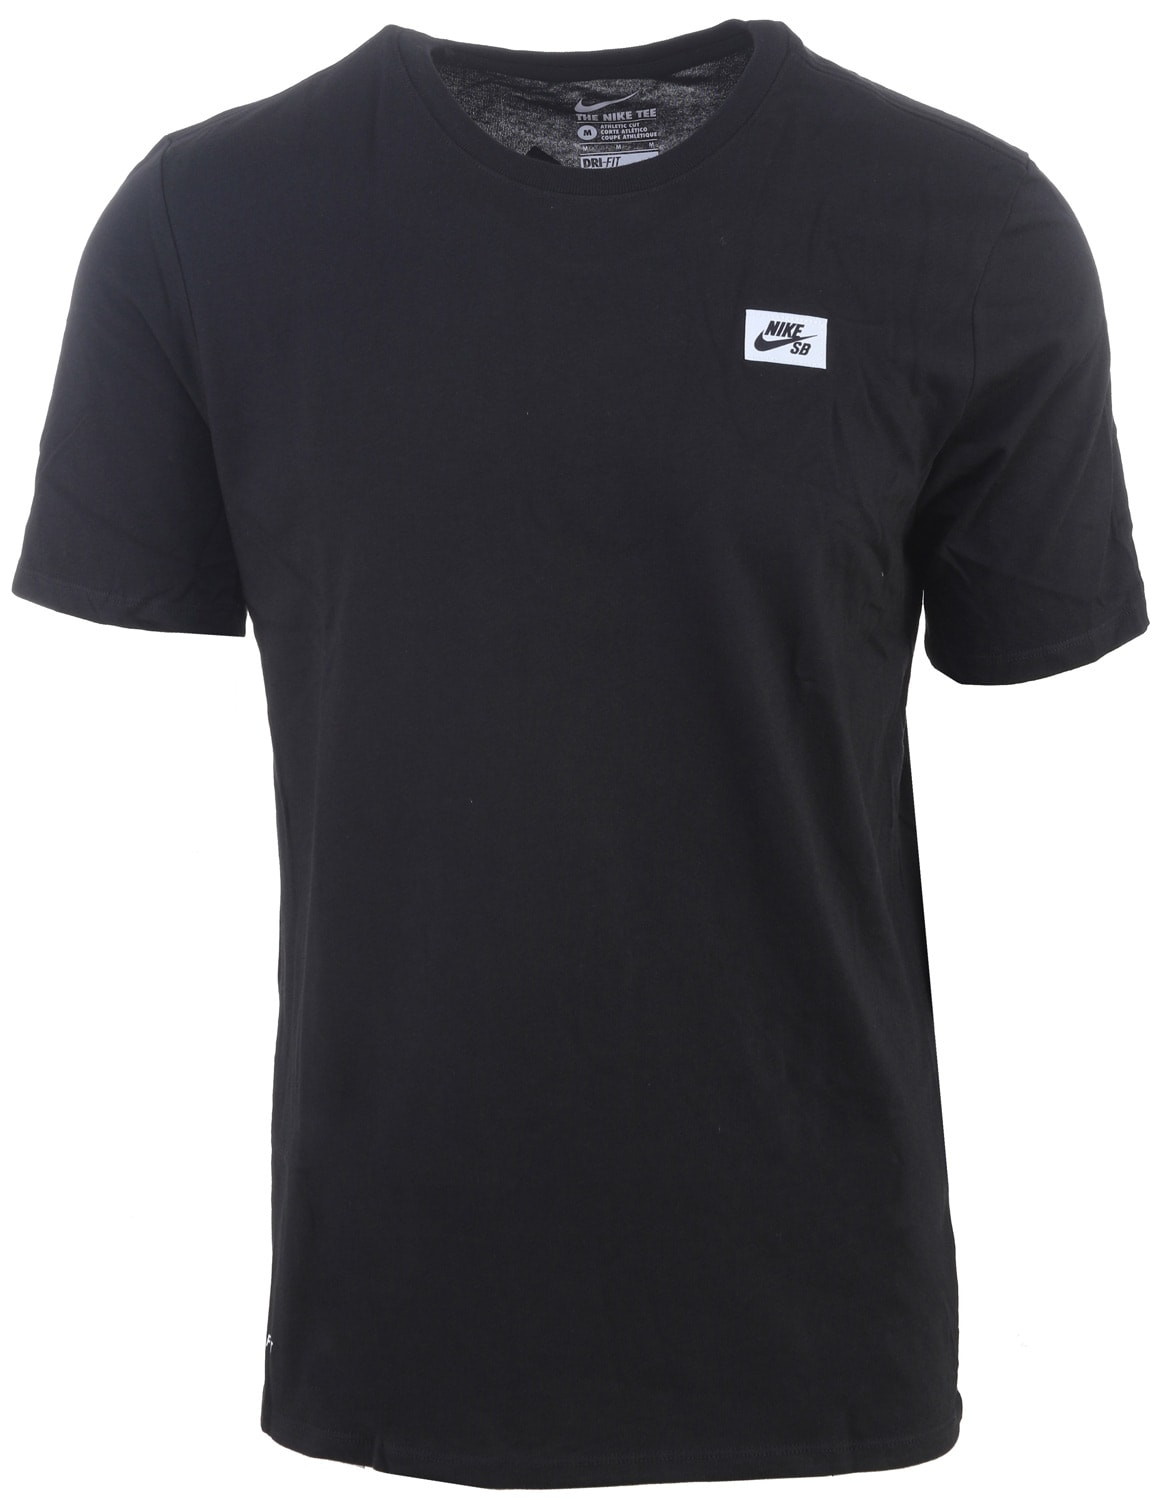 On Sale Nike SB Woven Box Tee T-Shirt up to 40% off